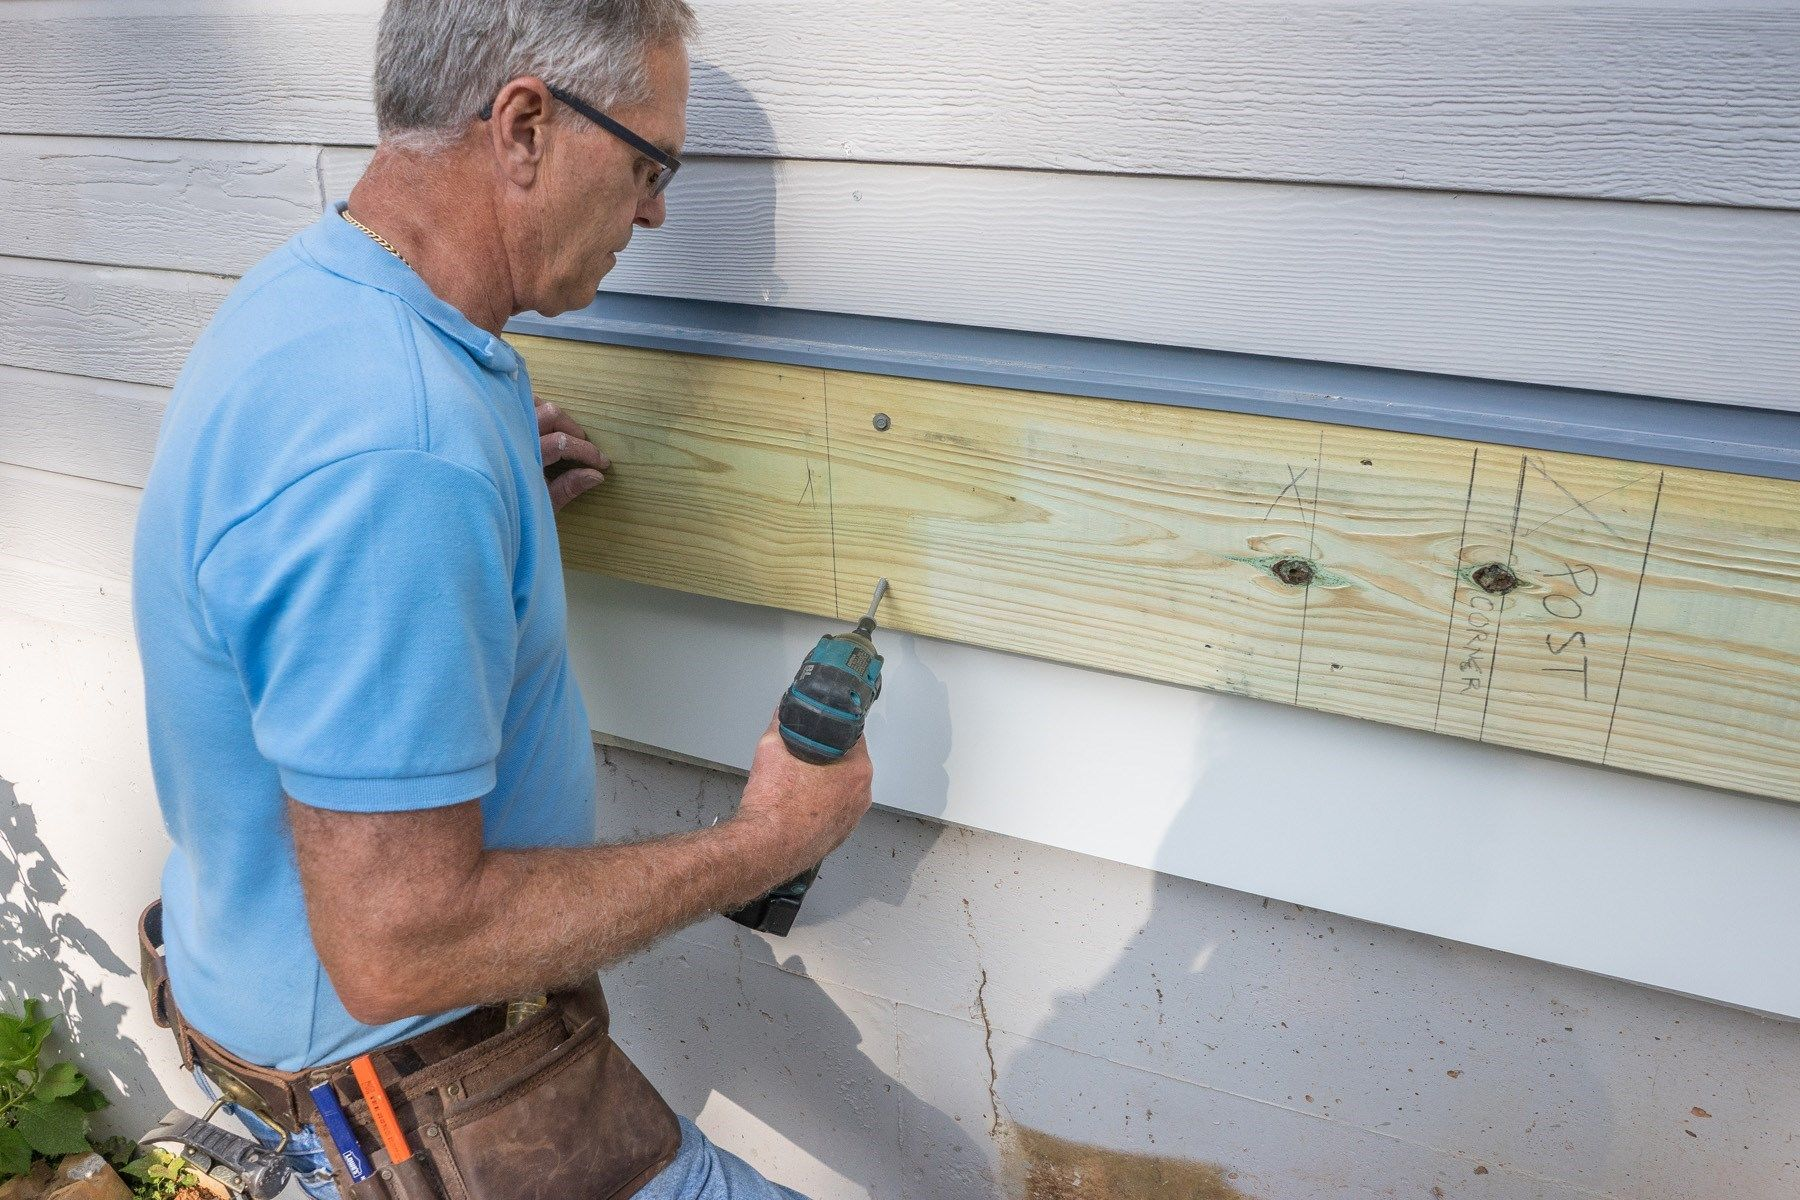 Use structural screws to attach the ledger to the house